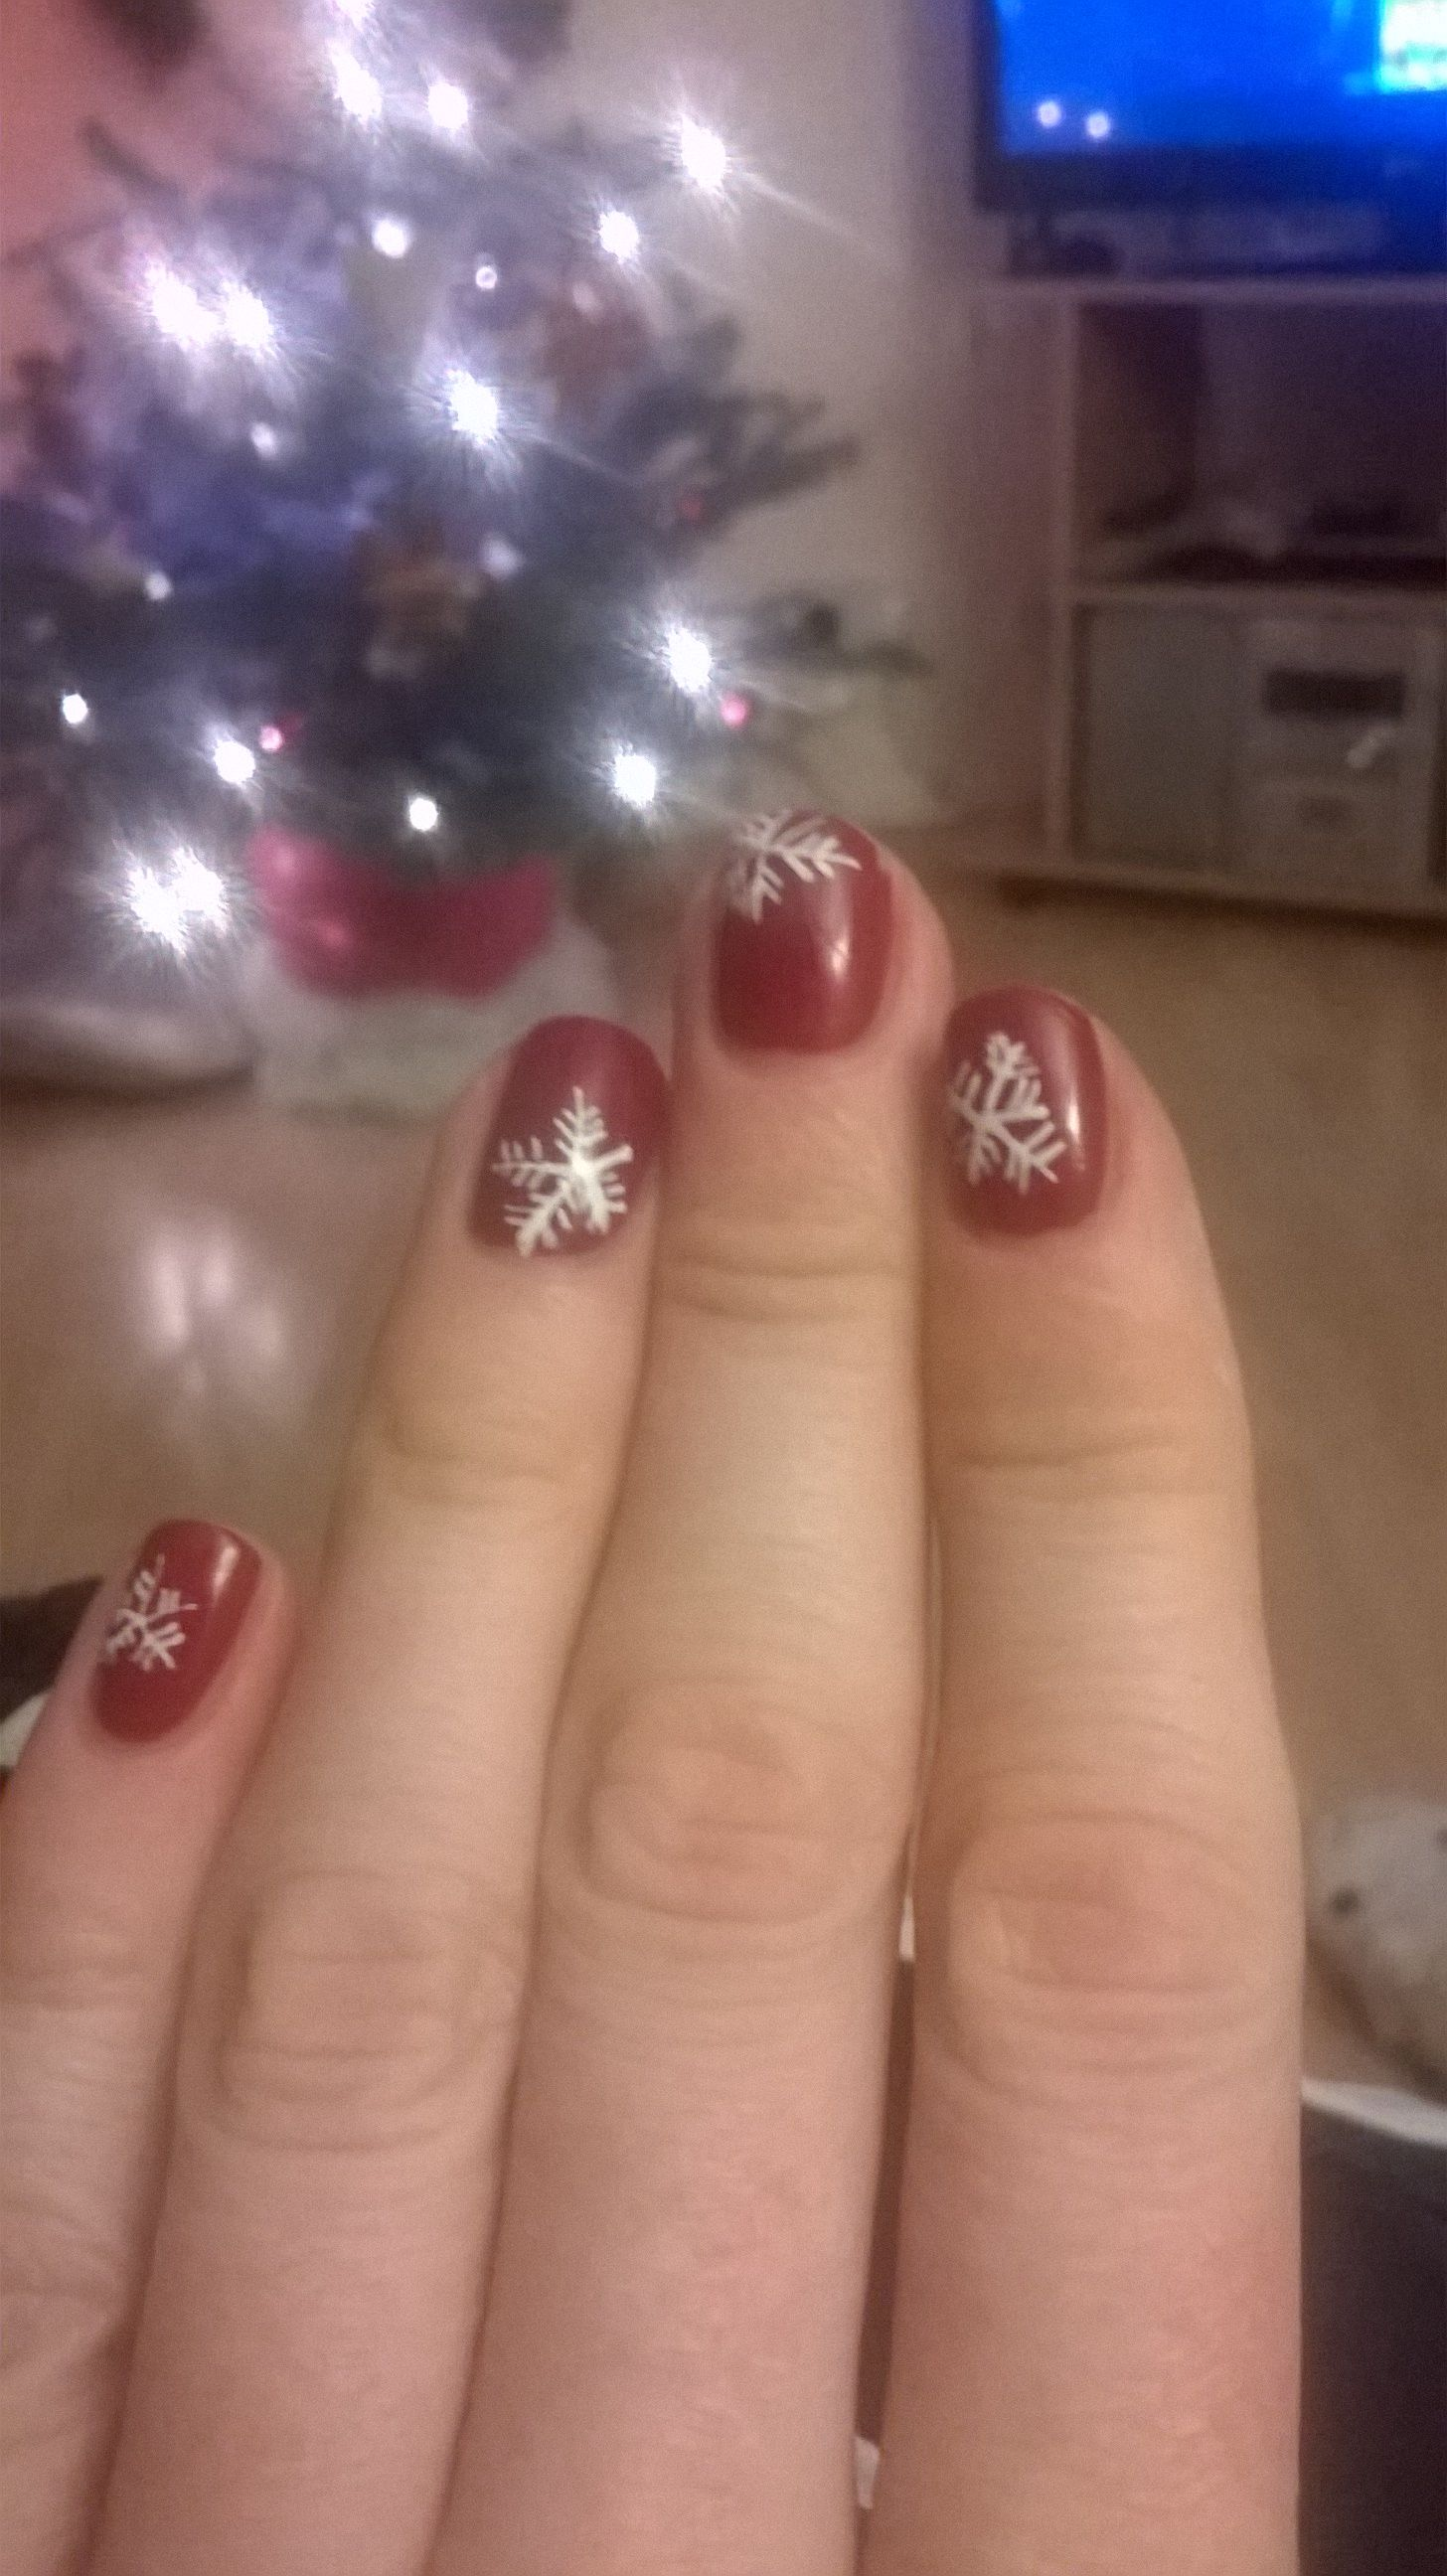 Trying a bit of Xmas nail art with Vinylux Rose Brocade and a Barry M nail art pen - ok to do with your dominant hand, not so much with the other one! :)